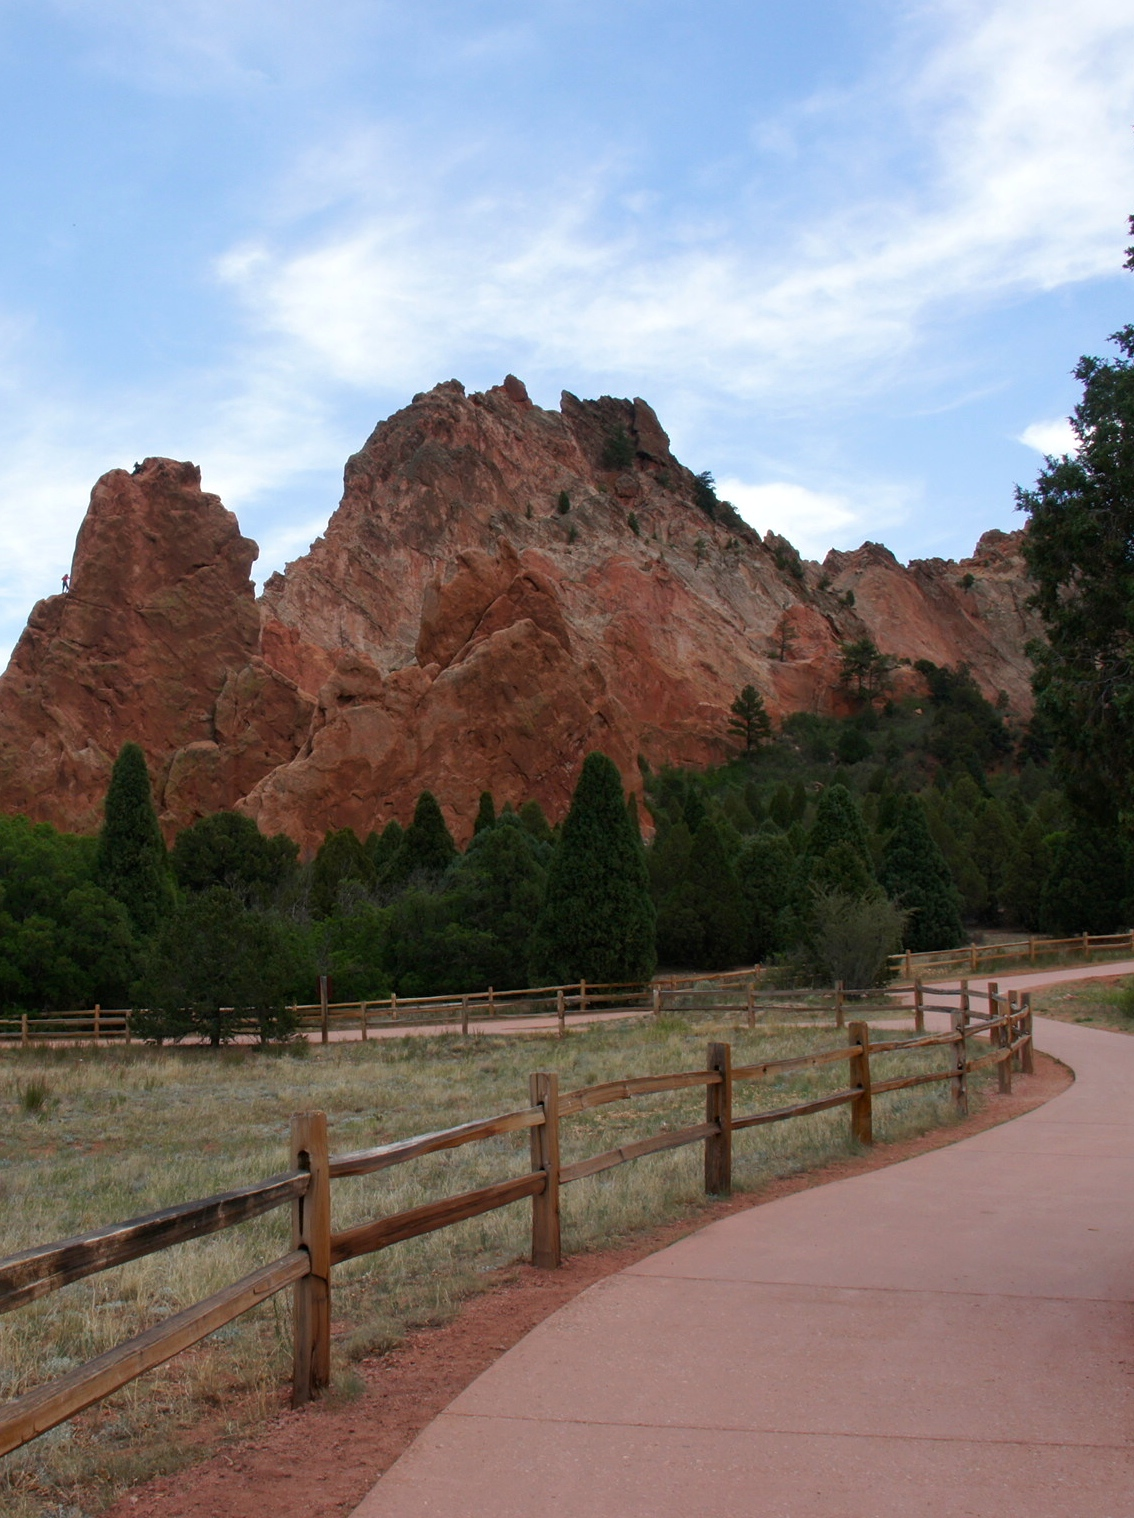 Colorado Springs, CO - 2015 Top 8 Best City for Pet Travelers from GoPetFriendly.com